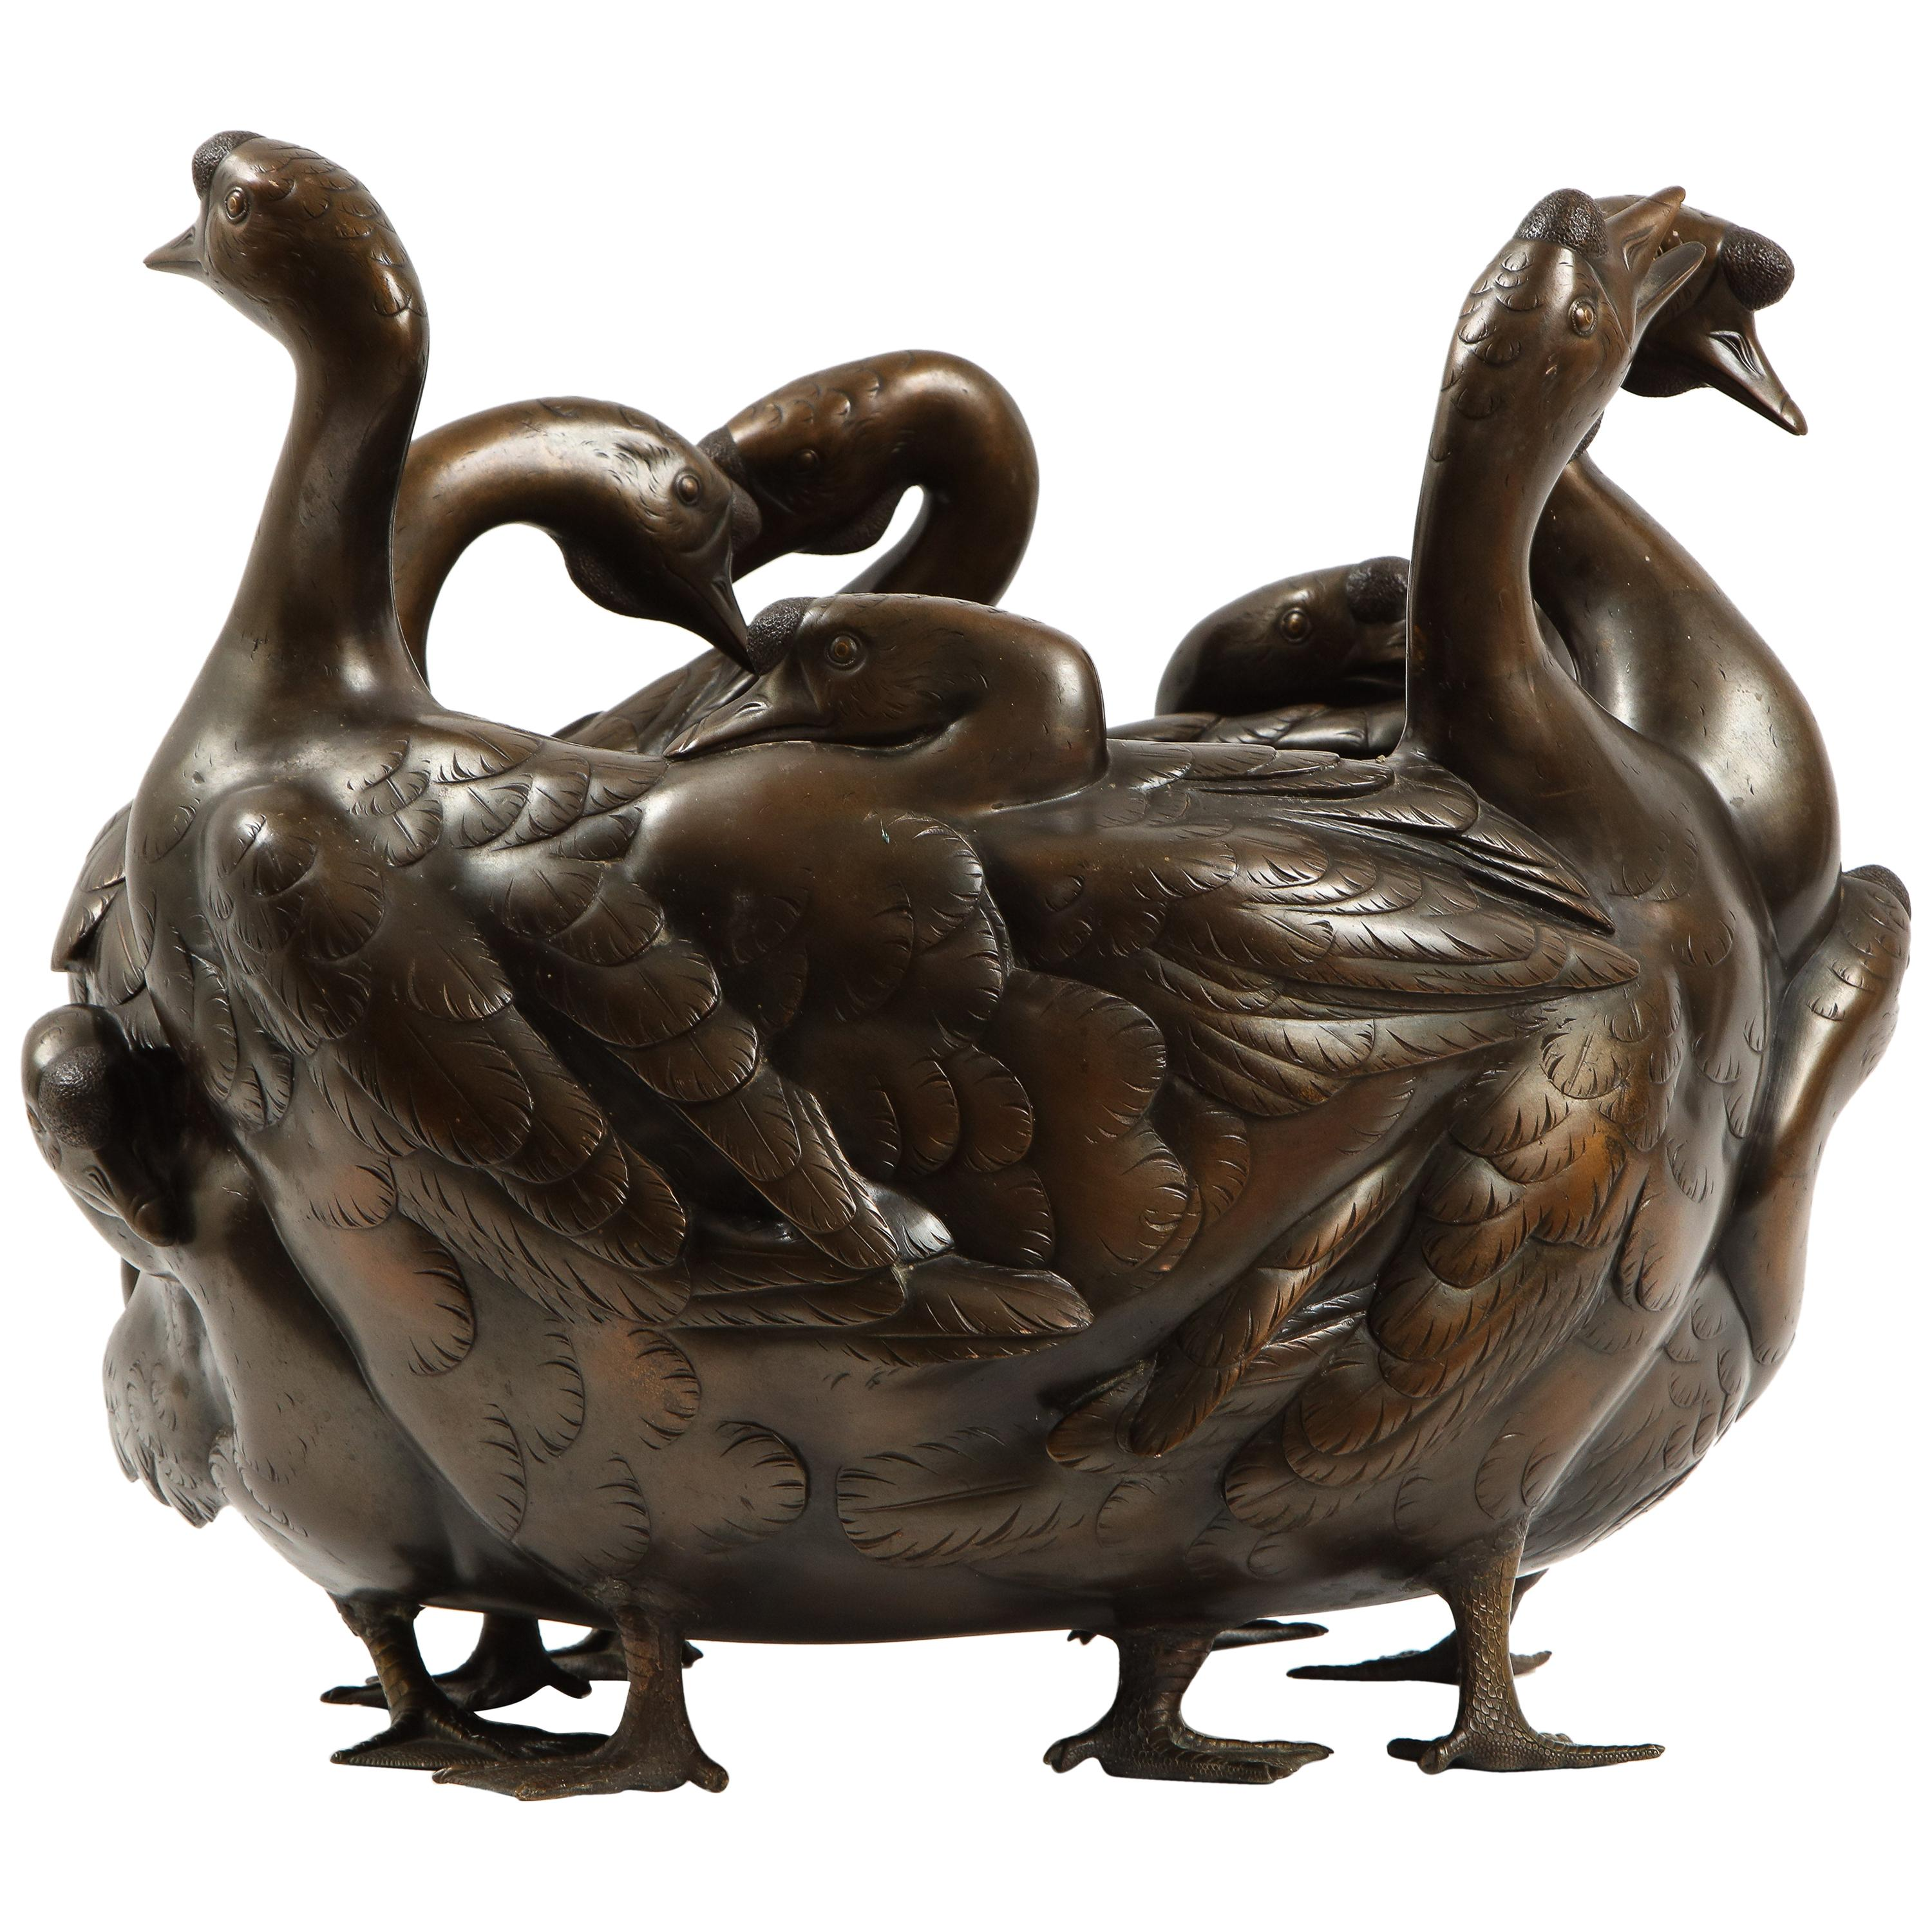 Meiji Period Rare Japanese Bronze Centerpiece of a Flock of Geese, Signed